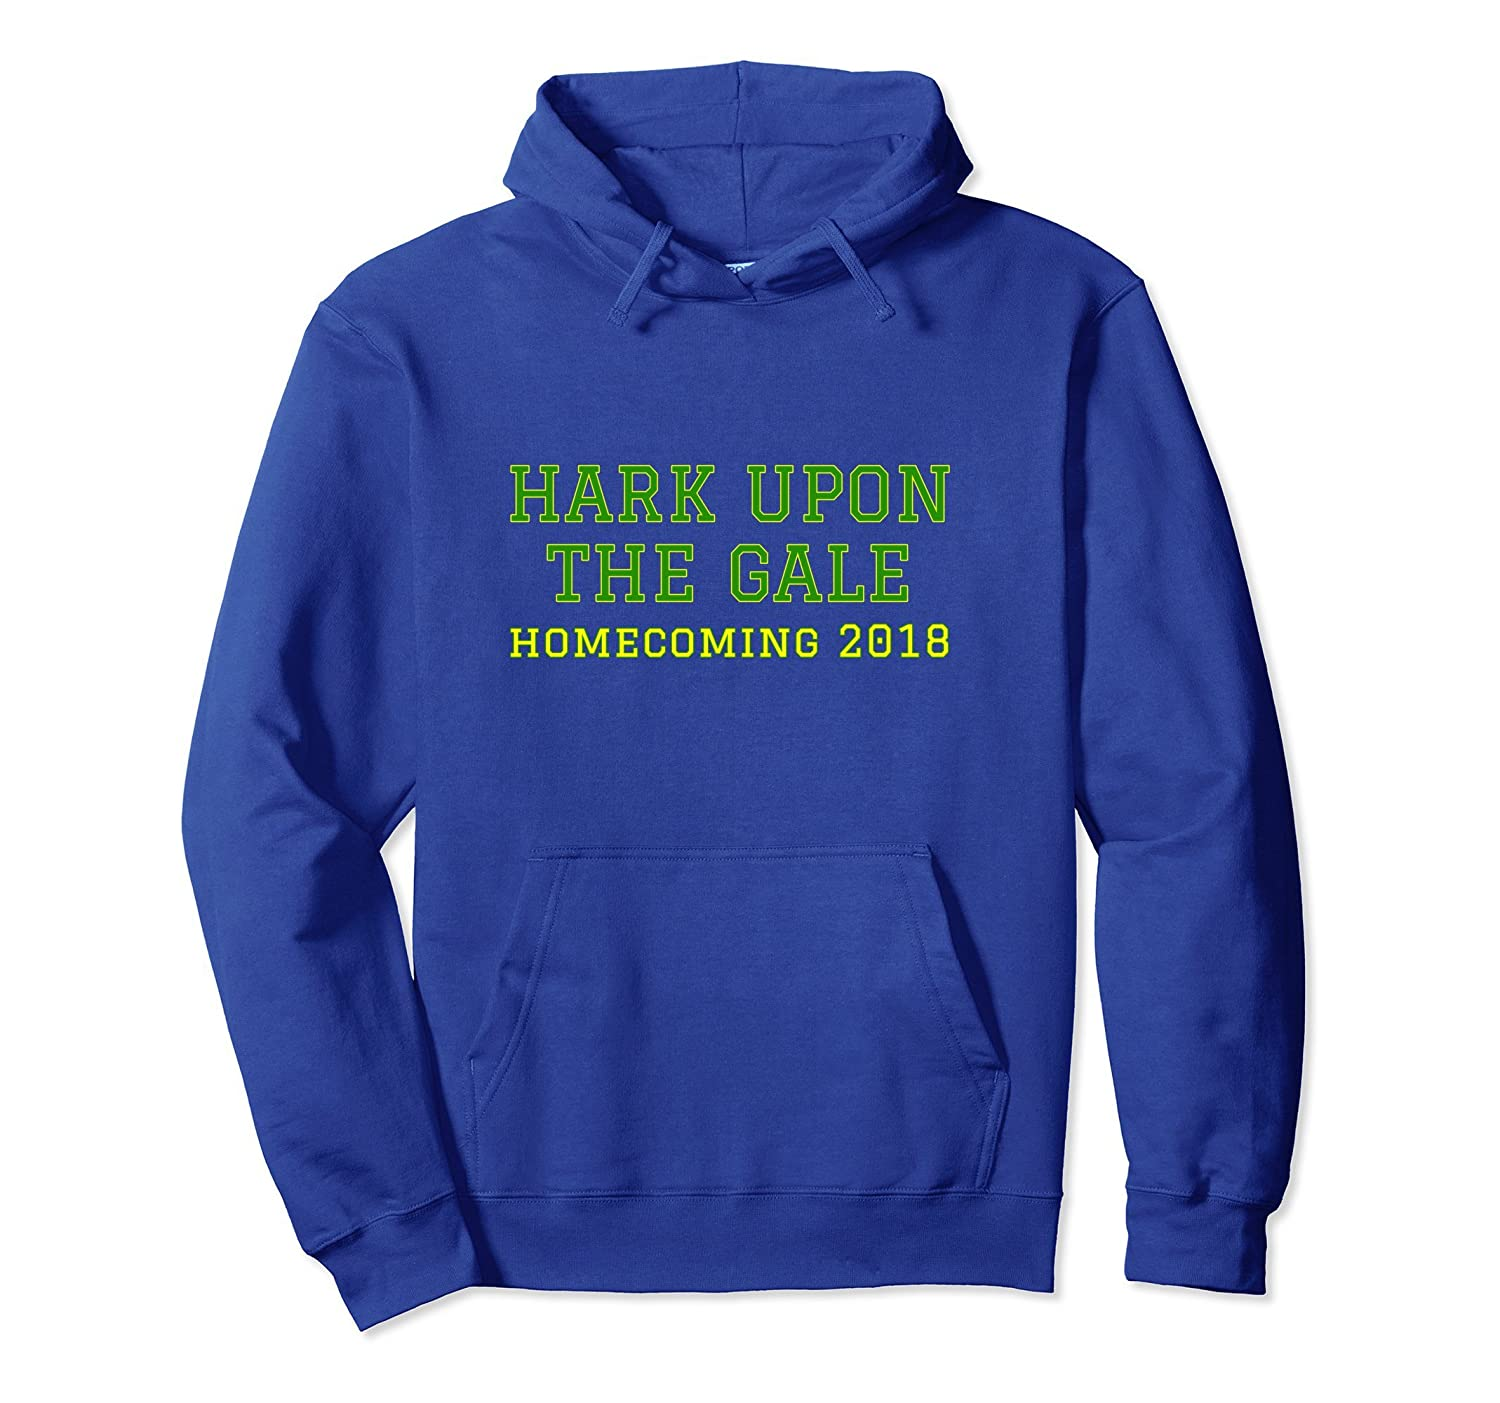 Hark Upon the Gale Homecoming 2018 Hoodie William & Mary-mt